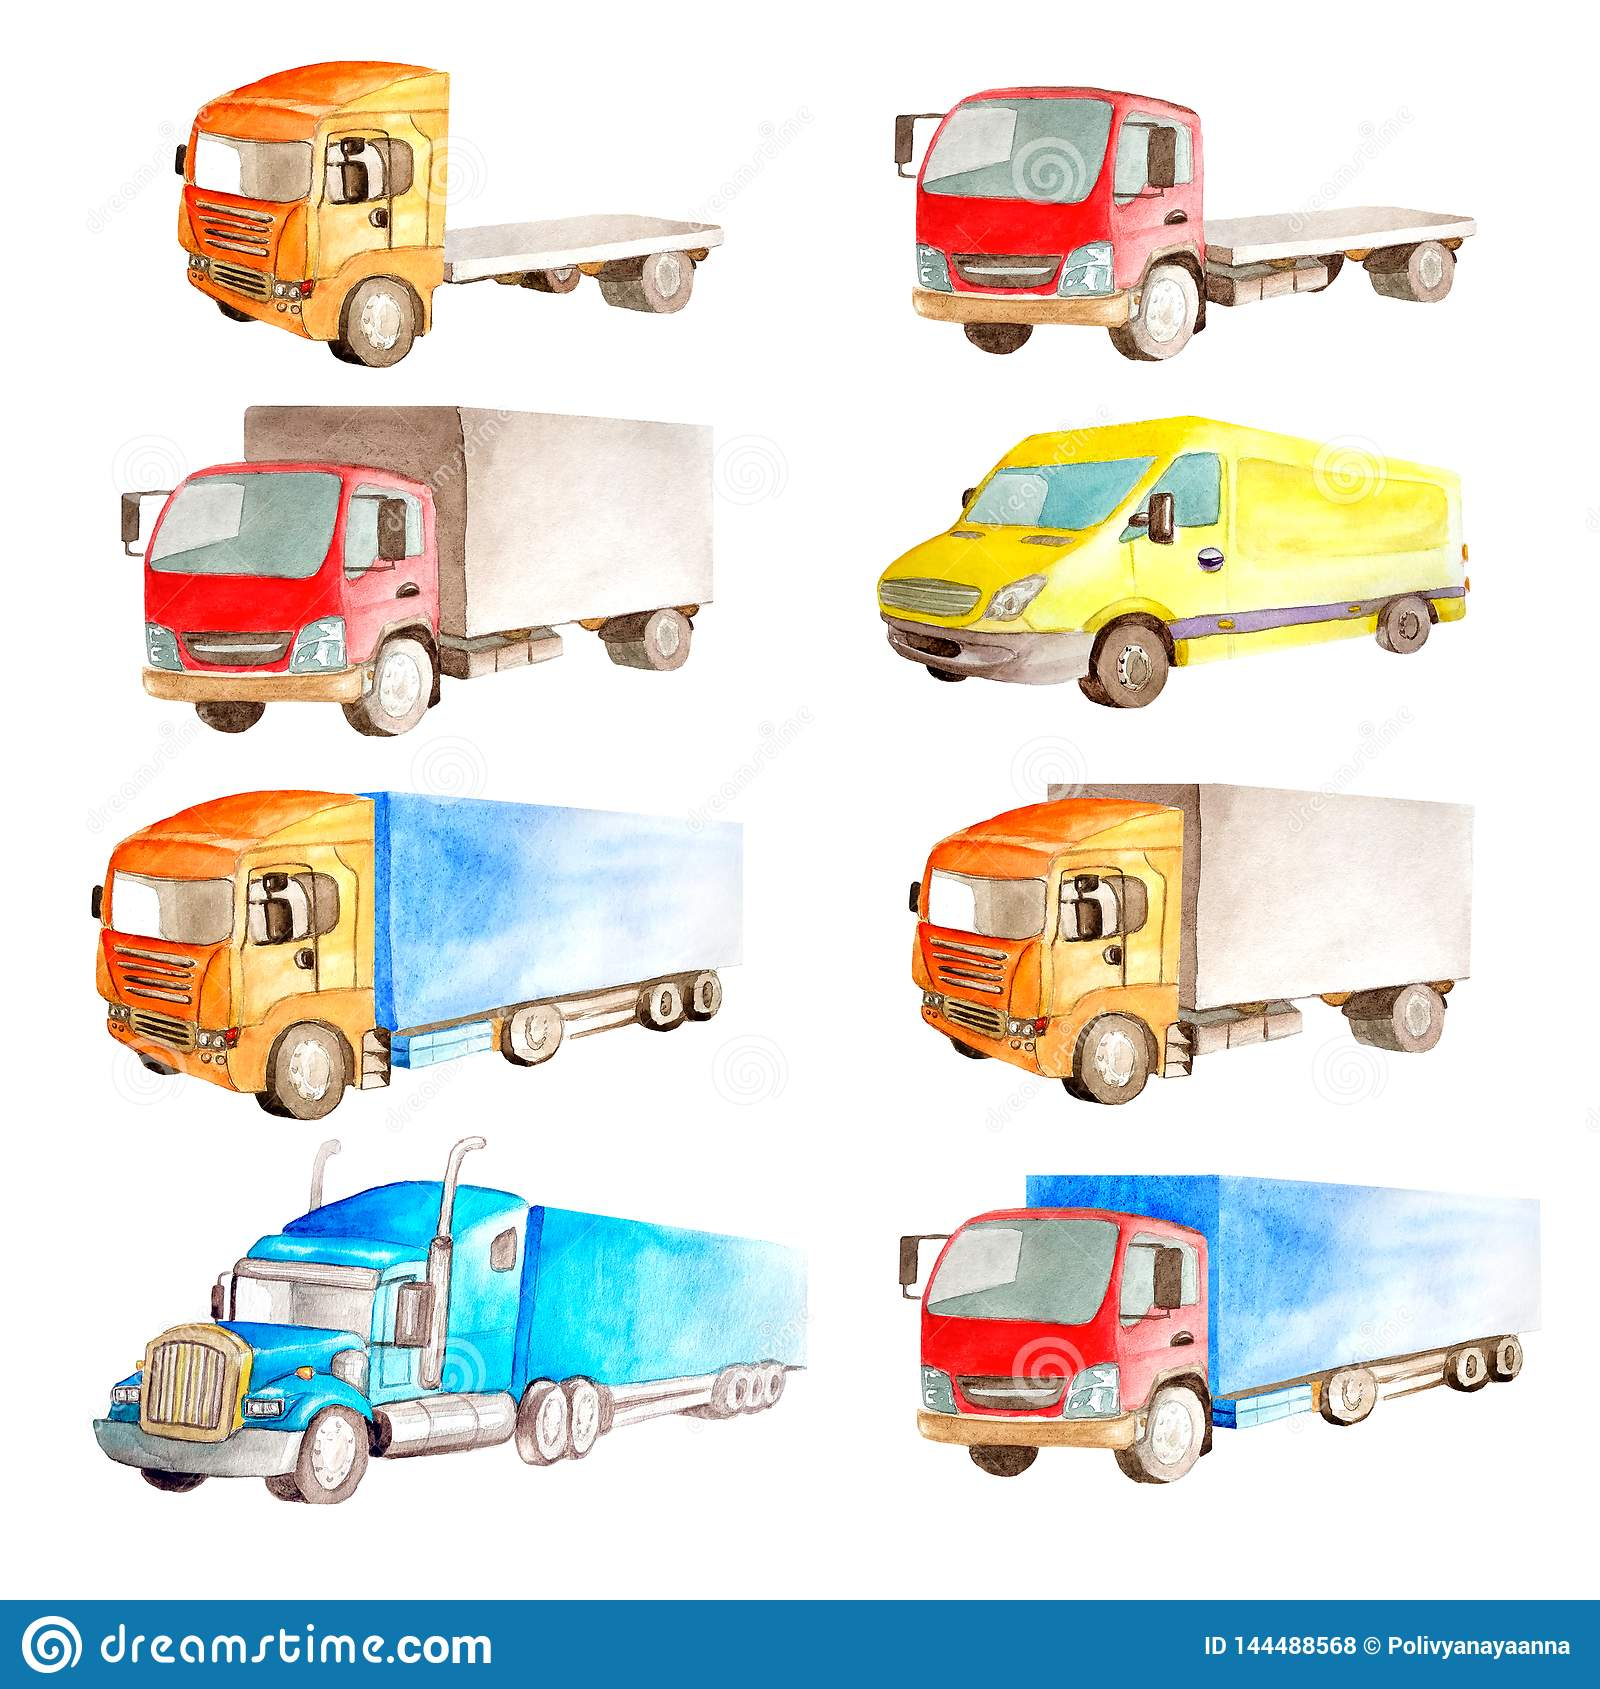 Watercolor set collection of vehicles  trucks, lorries, vans in different colors, type and classification in white background